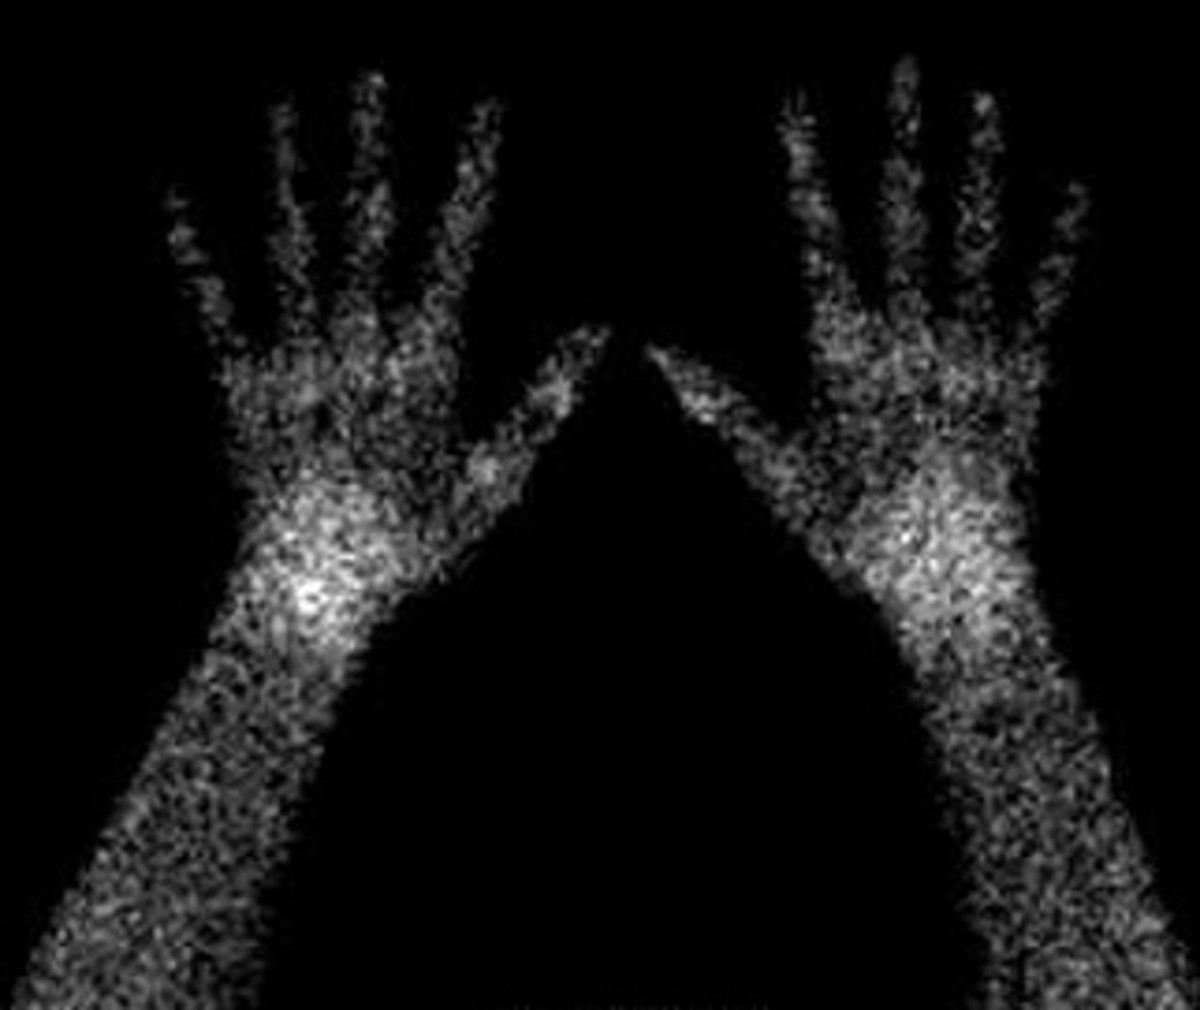 Scan of the author's hands showing areas of inflammation peaking in wrists and some finger joints.